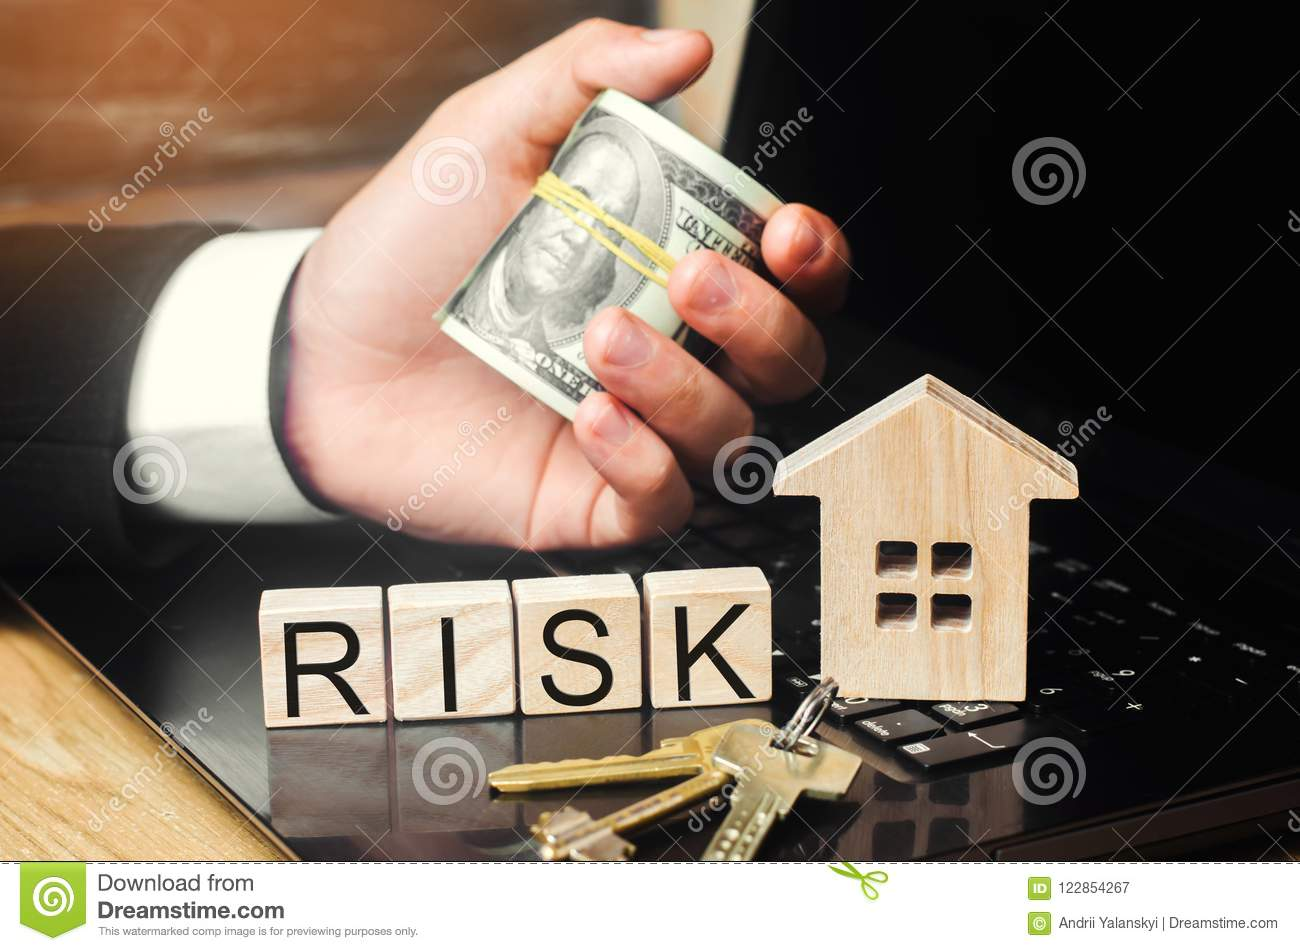 Protection of property rights. The concept and methods of protection of property rights 5